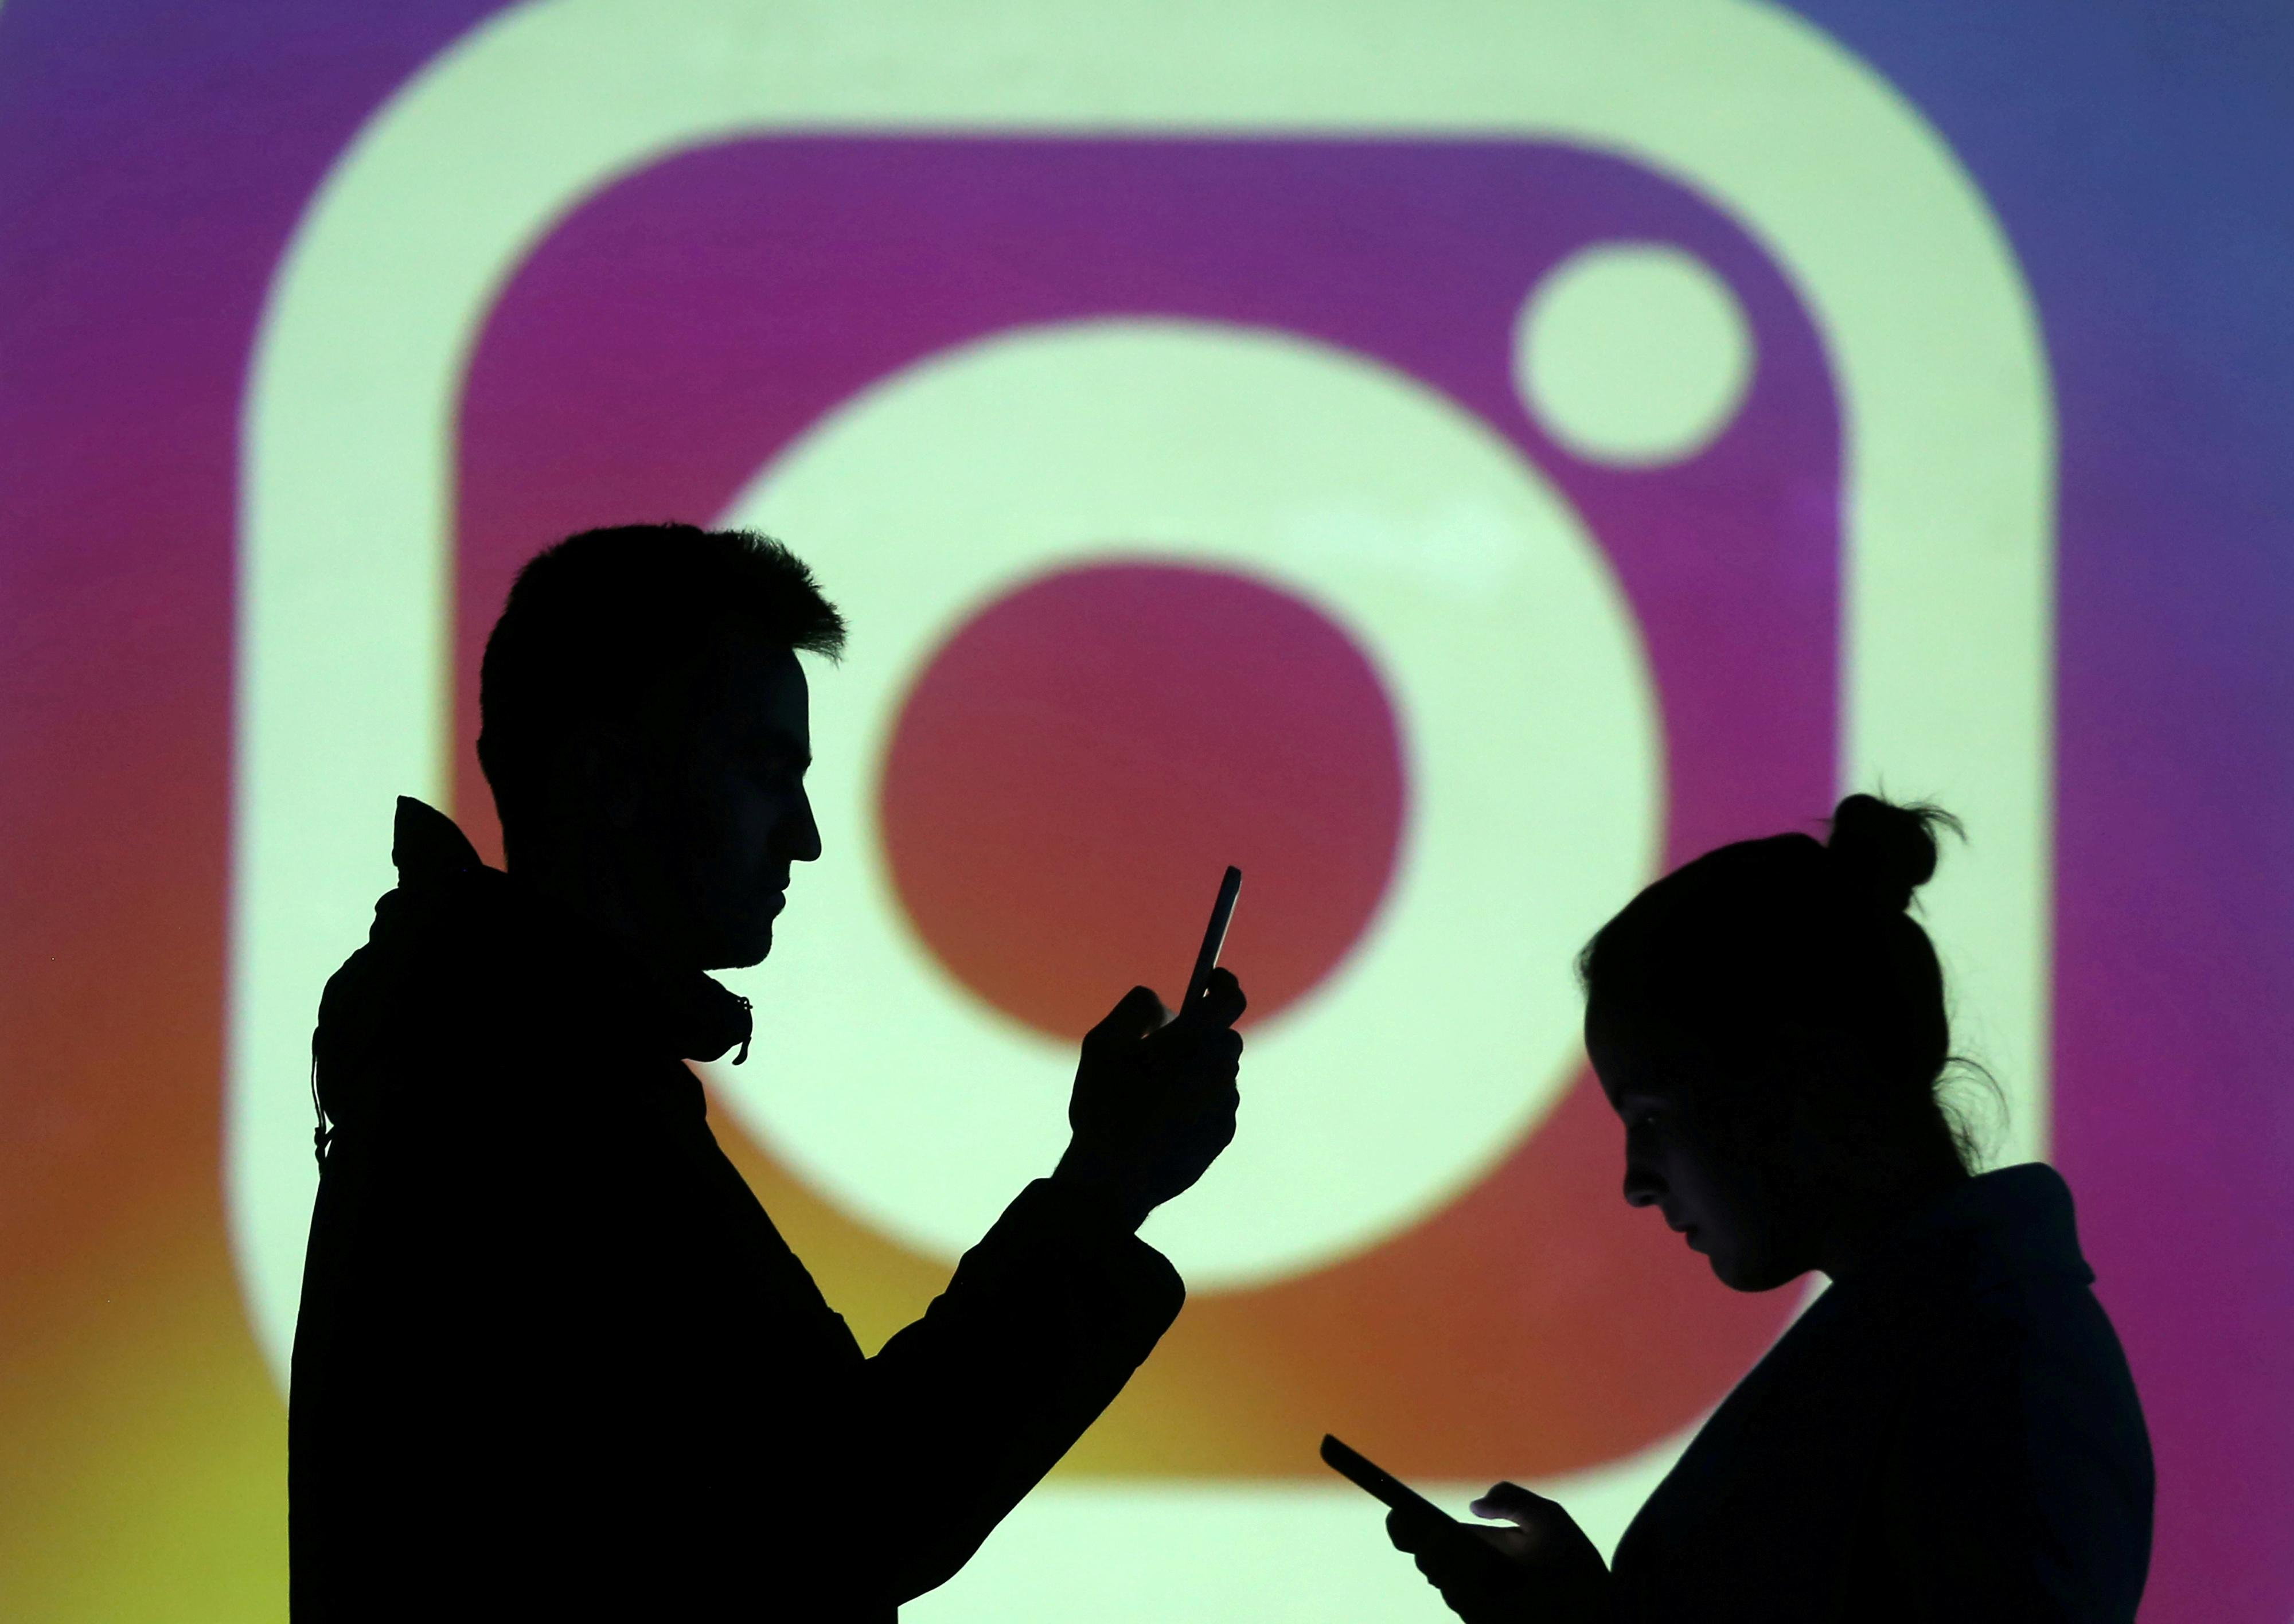 Russian accounts targeted U.S. voters on Instagram ahead of 2020...